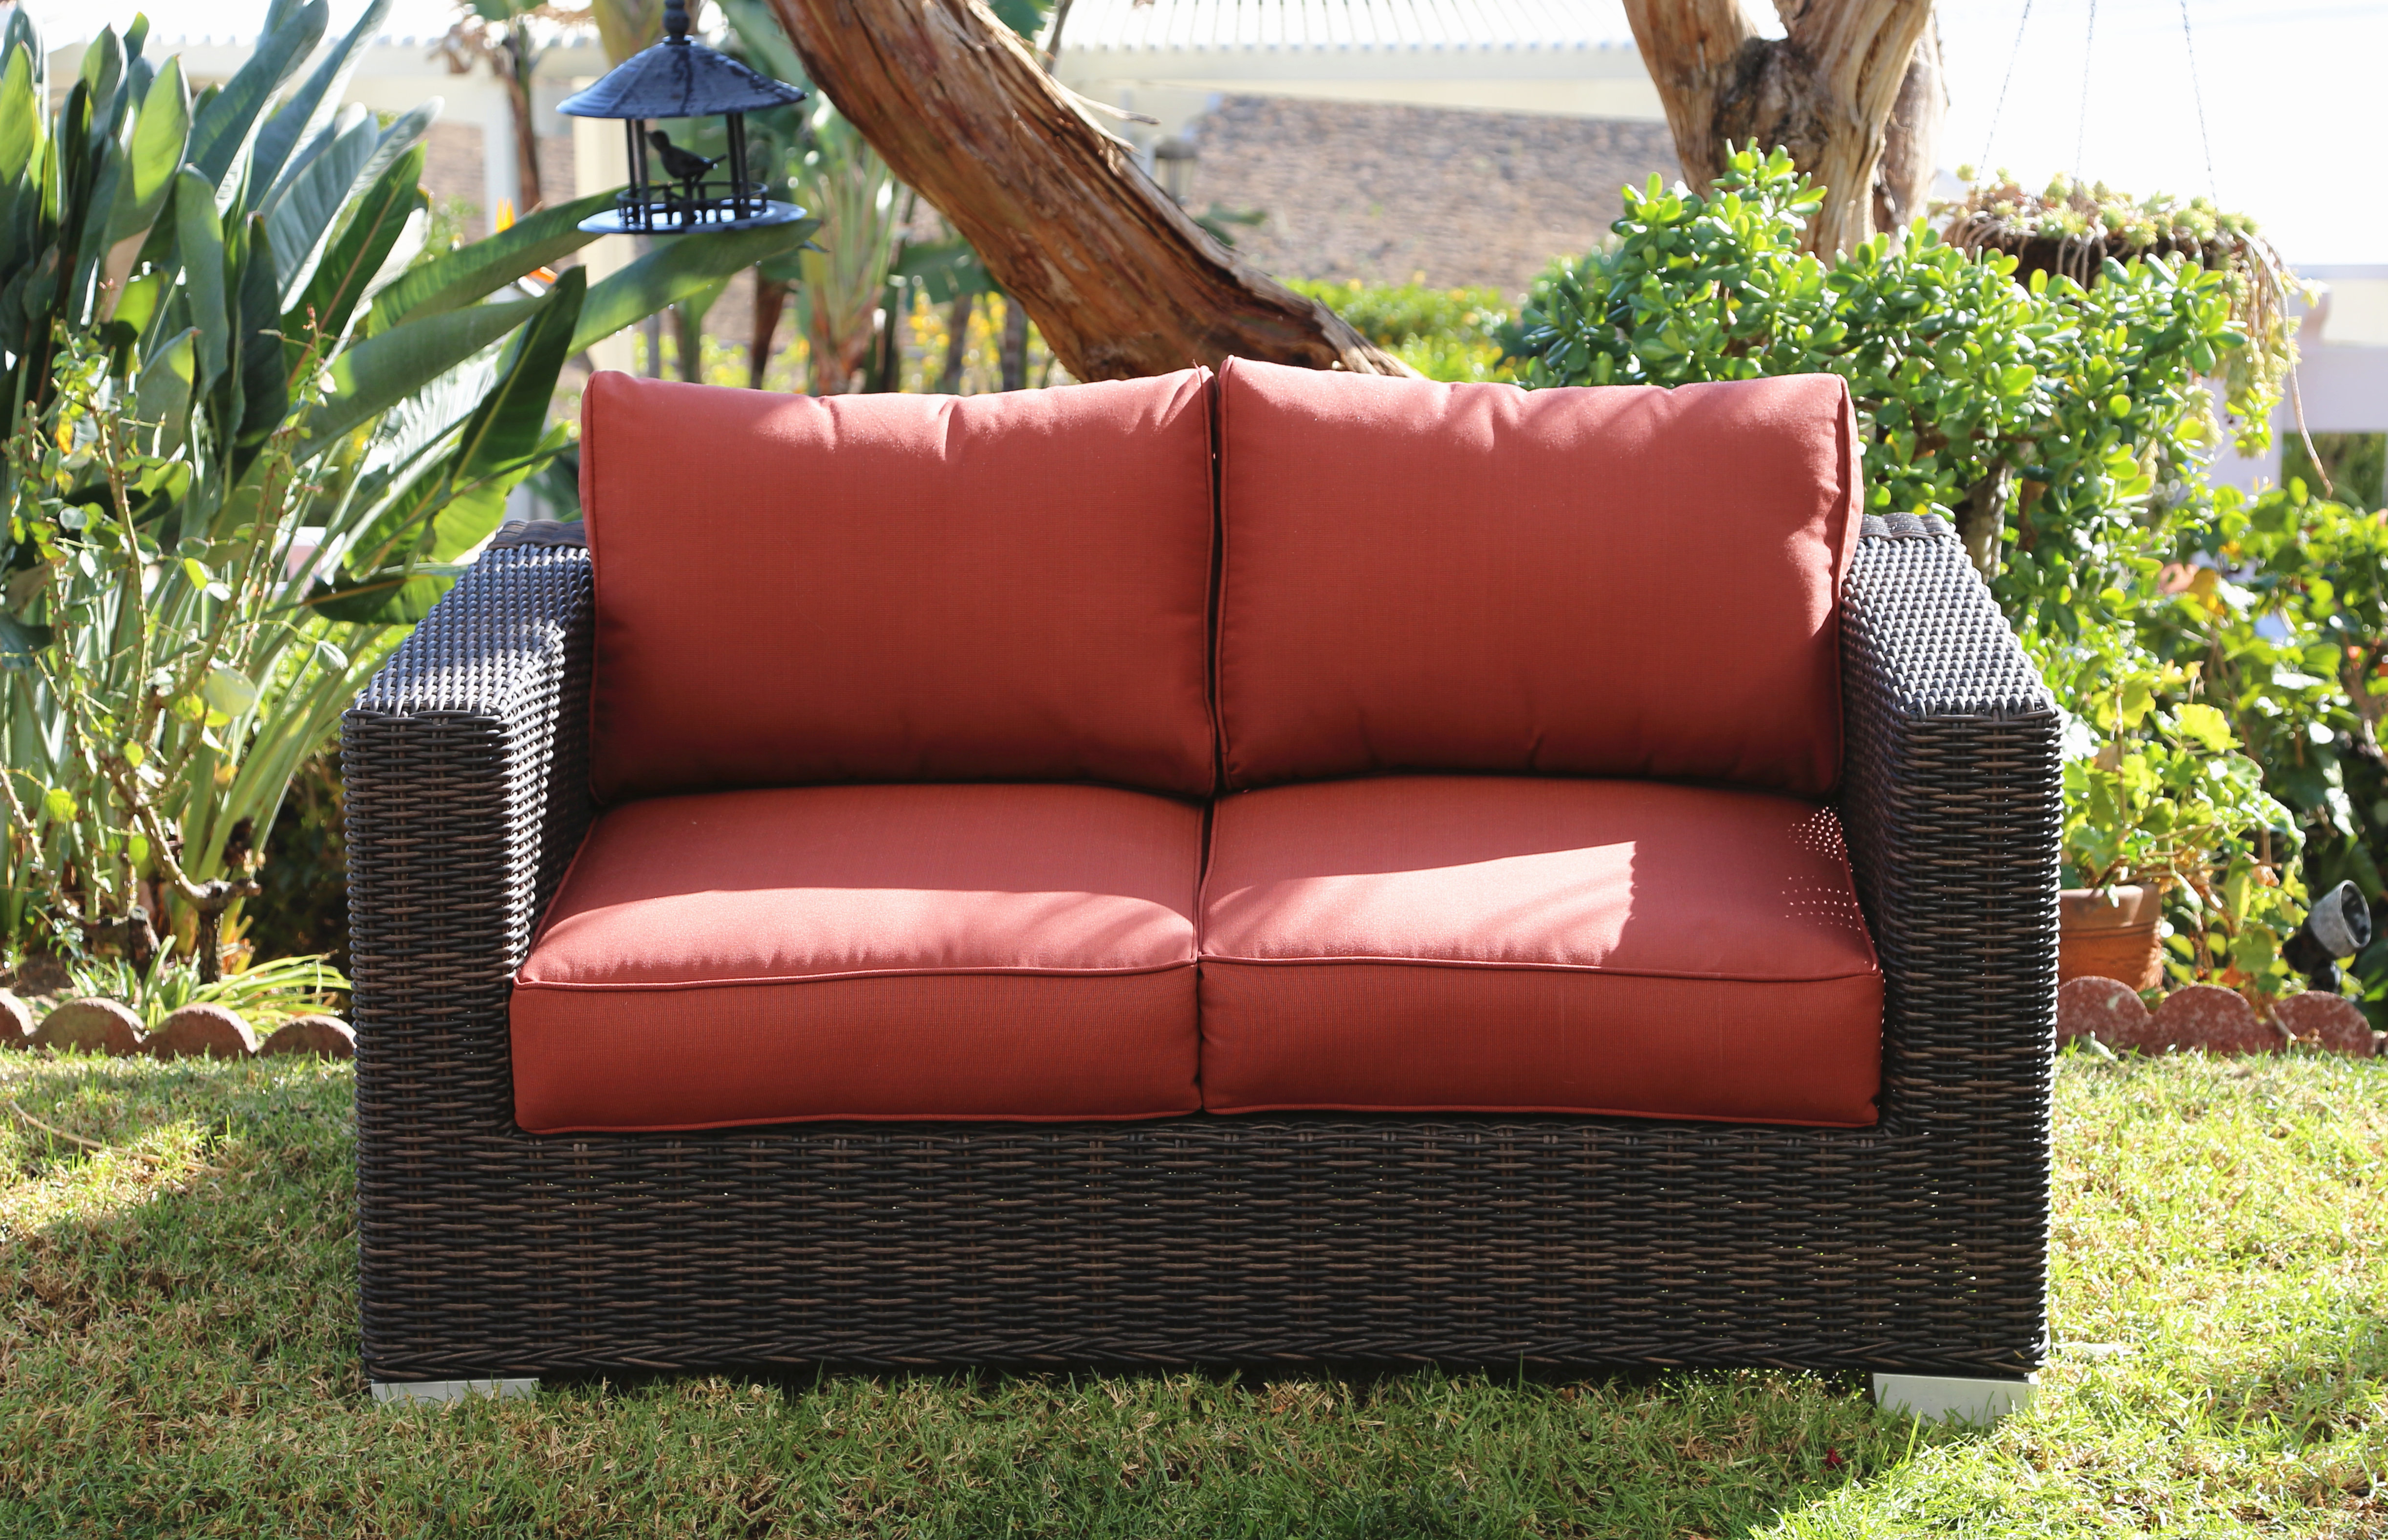 Avadi Outdoor Sofas & Ottomans 3 Piece Set Within Latest Fults Loveseat With Cushion (View 13 of 25)